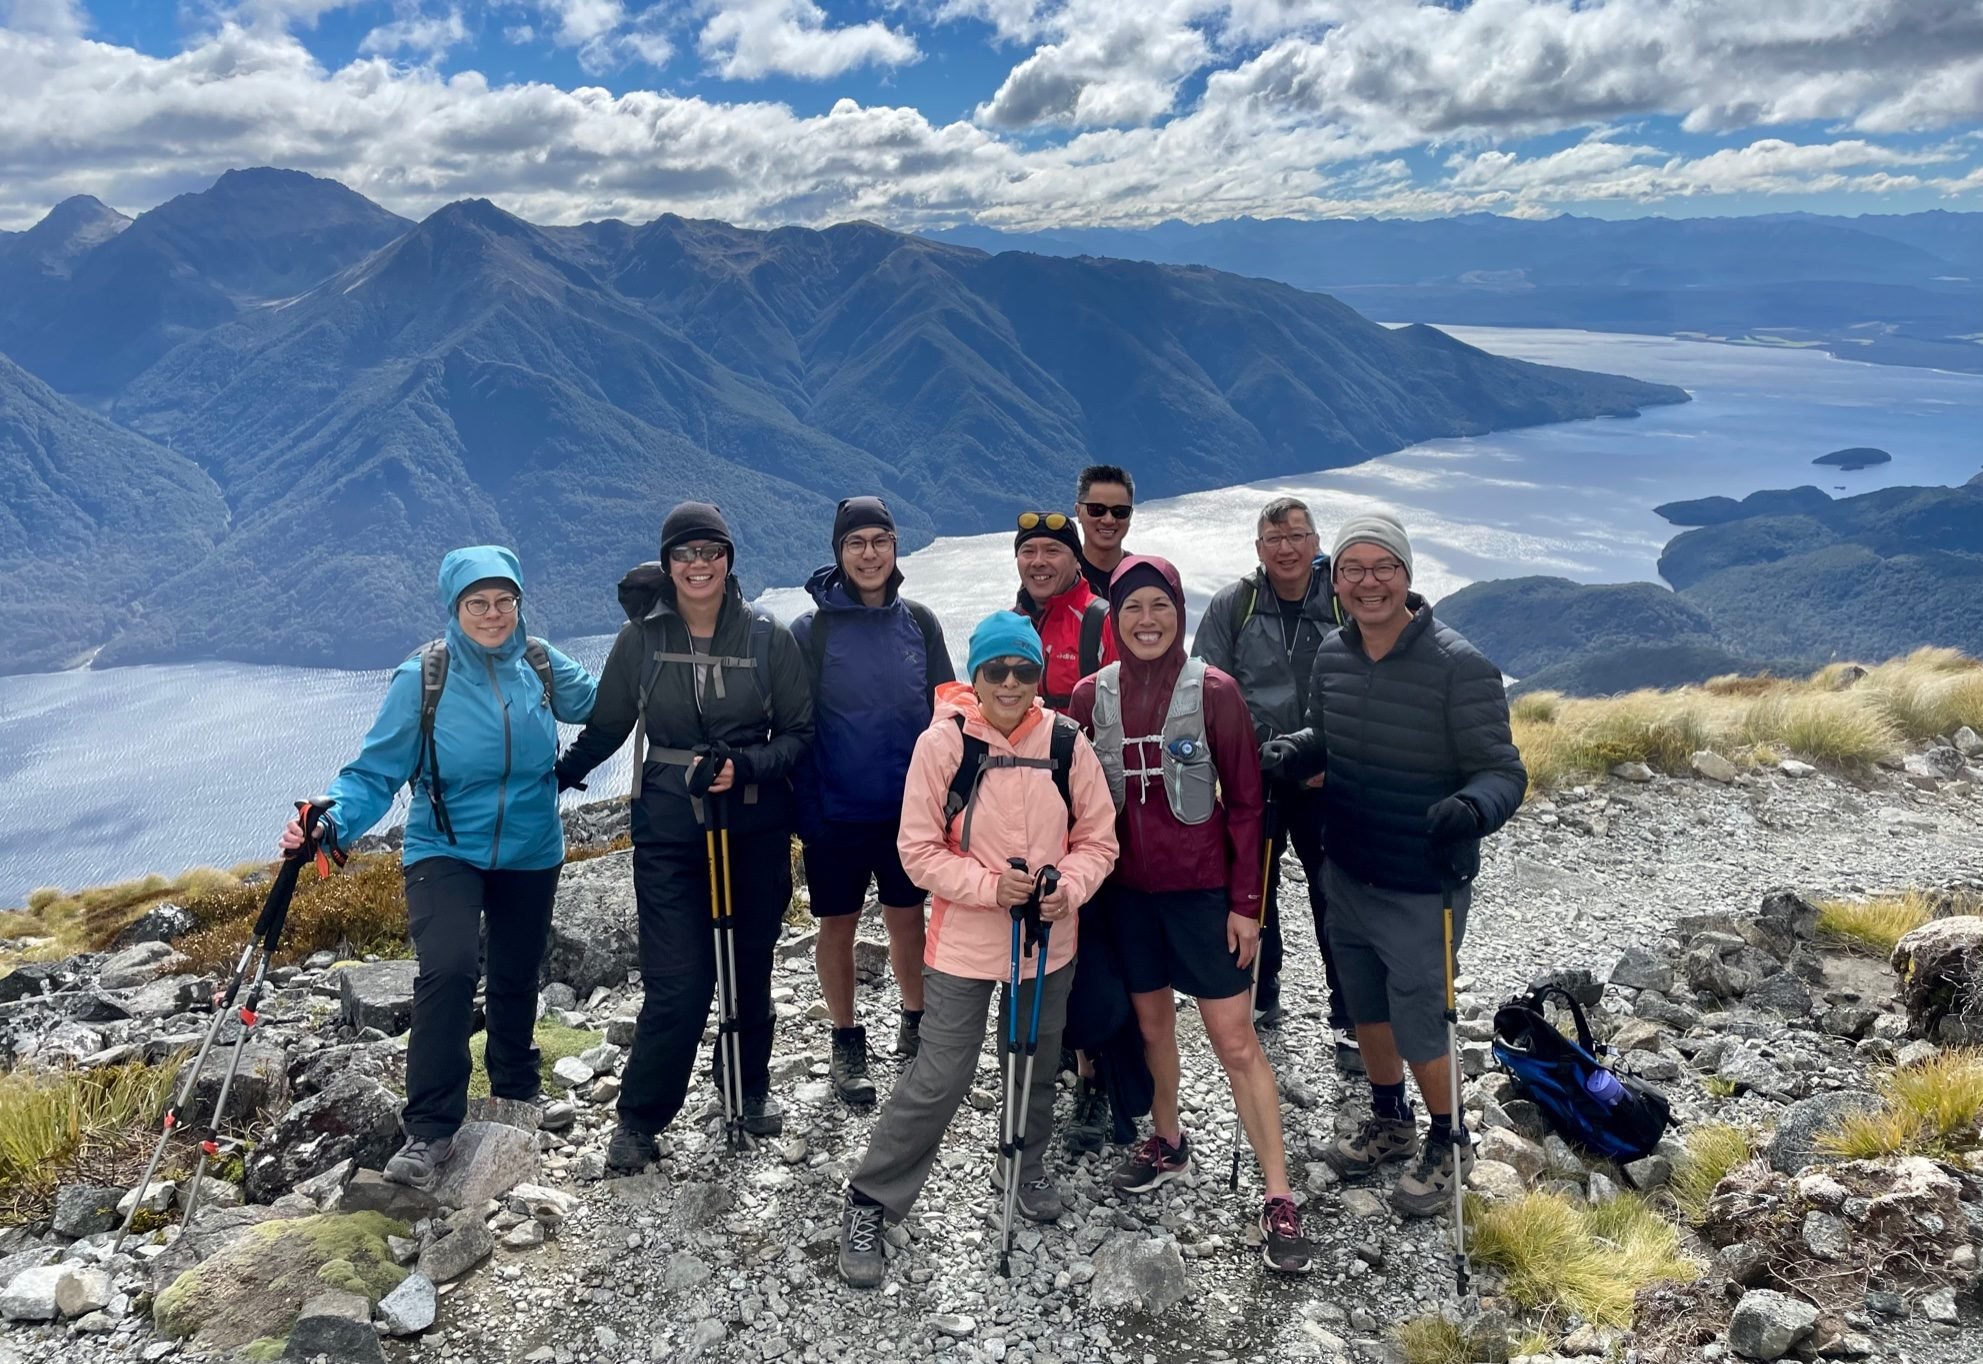 Group of trampers on mountain track above lake